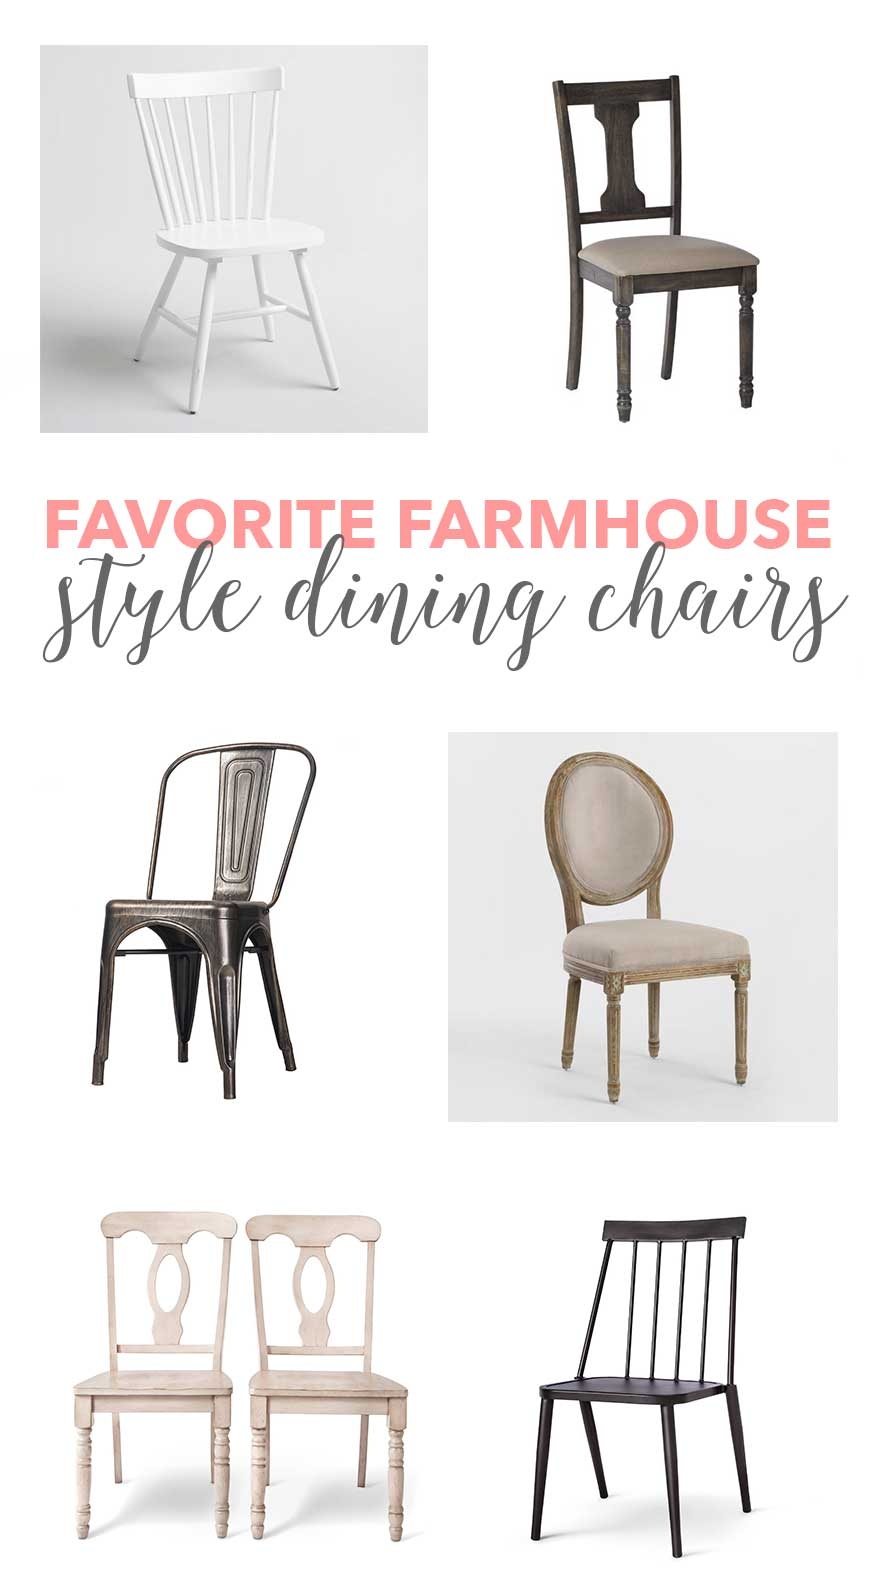 A fantastic resource for some beautiful farmhouse dining chairs!